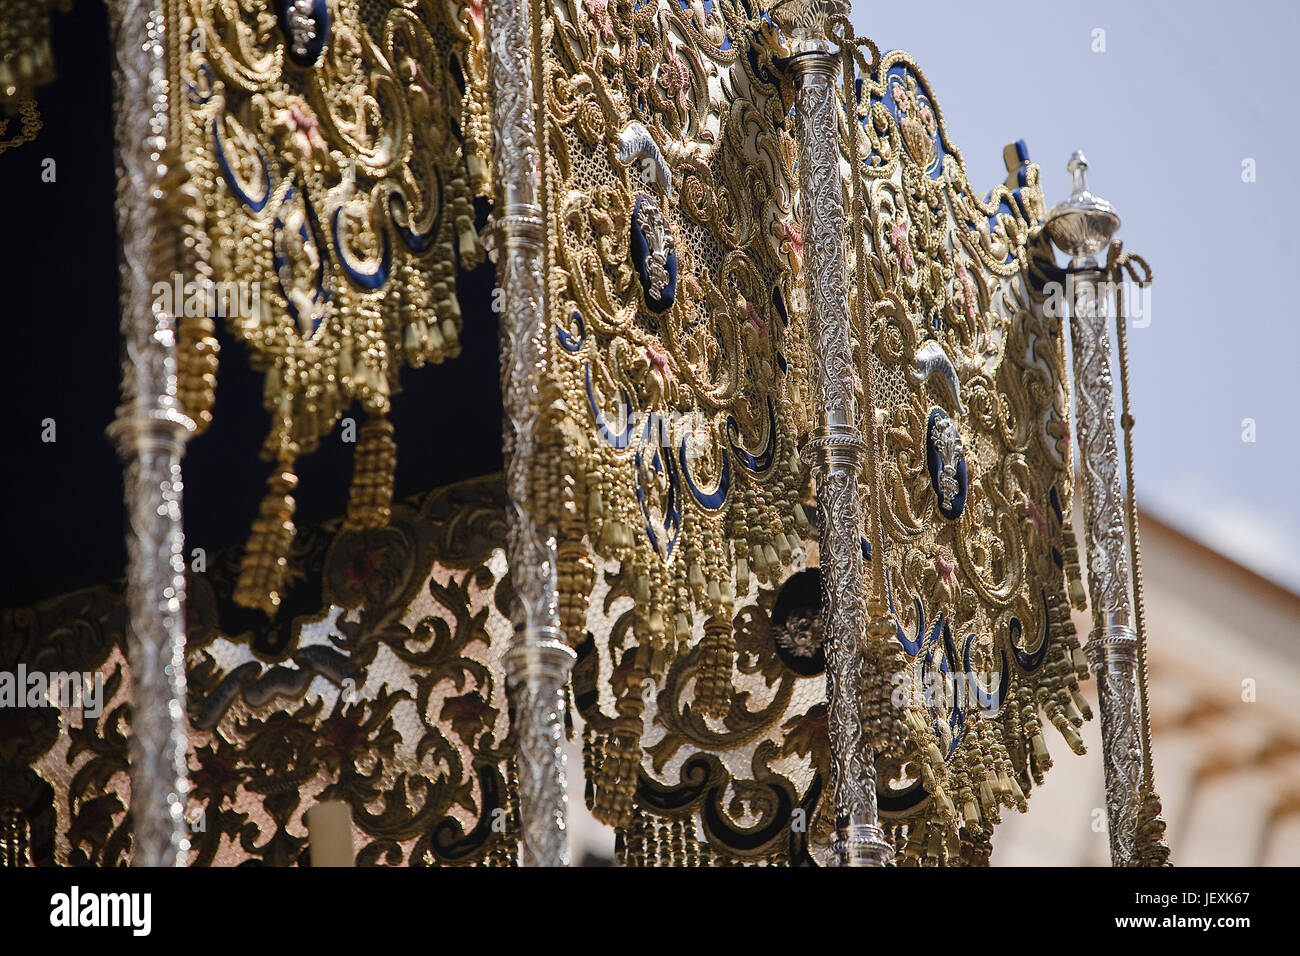 Detail of one side of a pallium embroidery in a throne during a procession of holy week, Seville, Spain - Stock Image